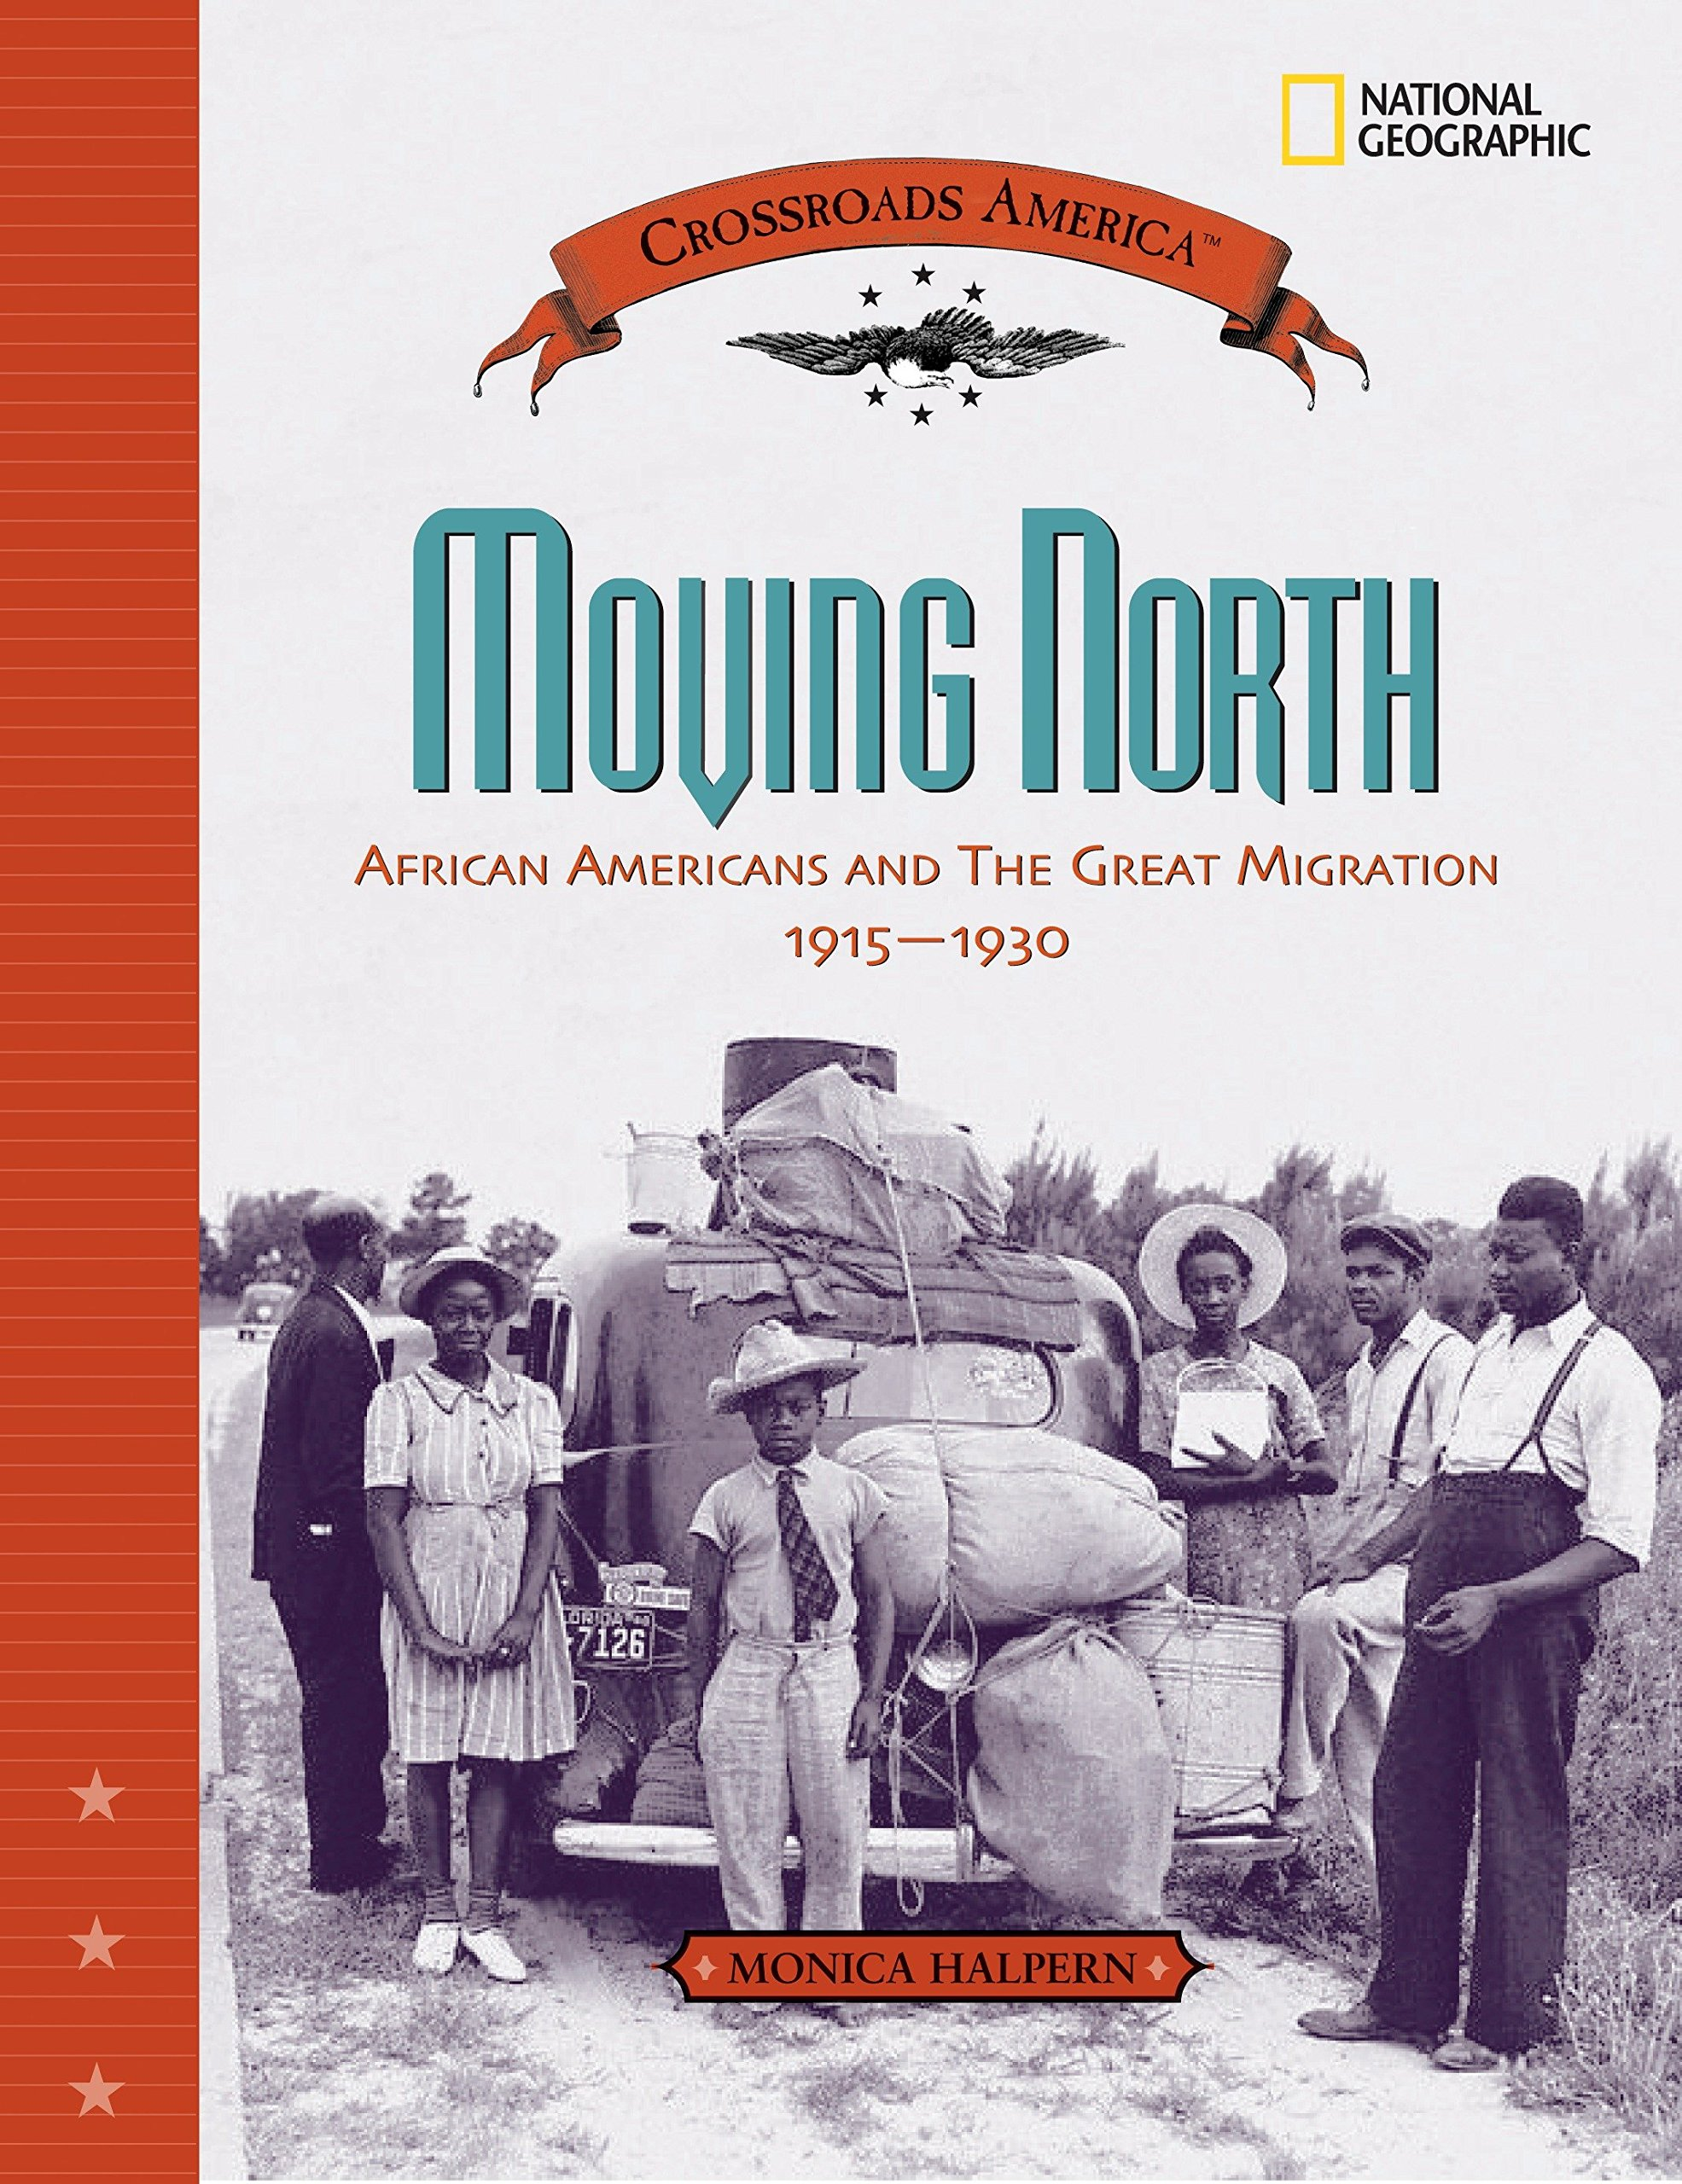 Download Moving North: African Americans and the Great Migration 1915-1930 (Crossroads America) ebook